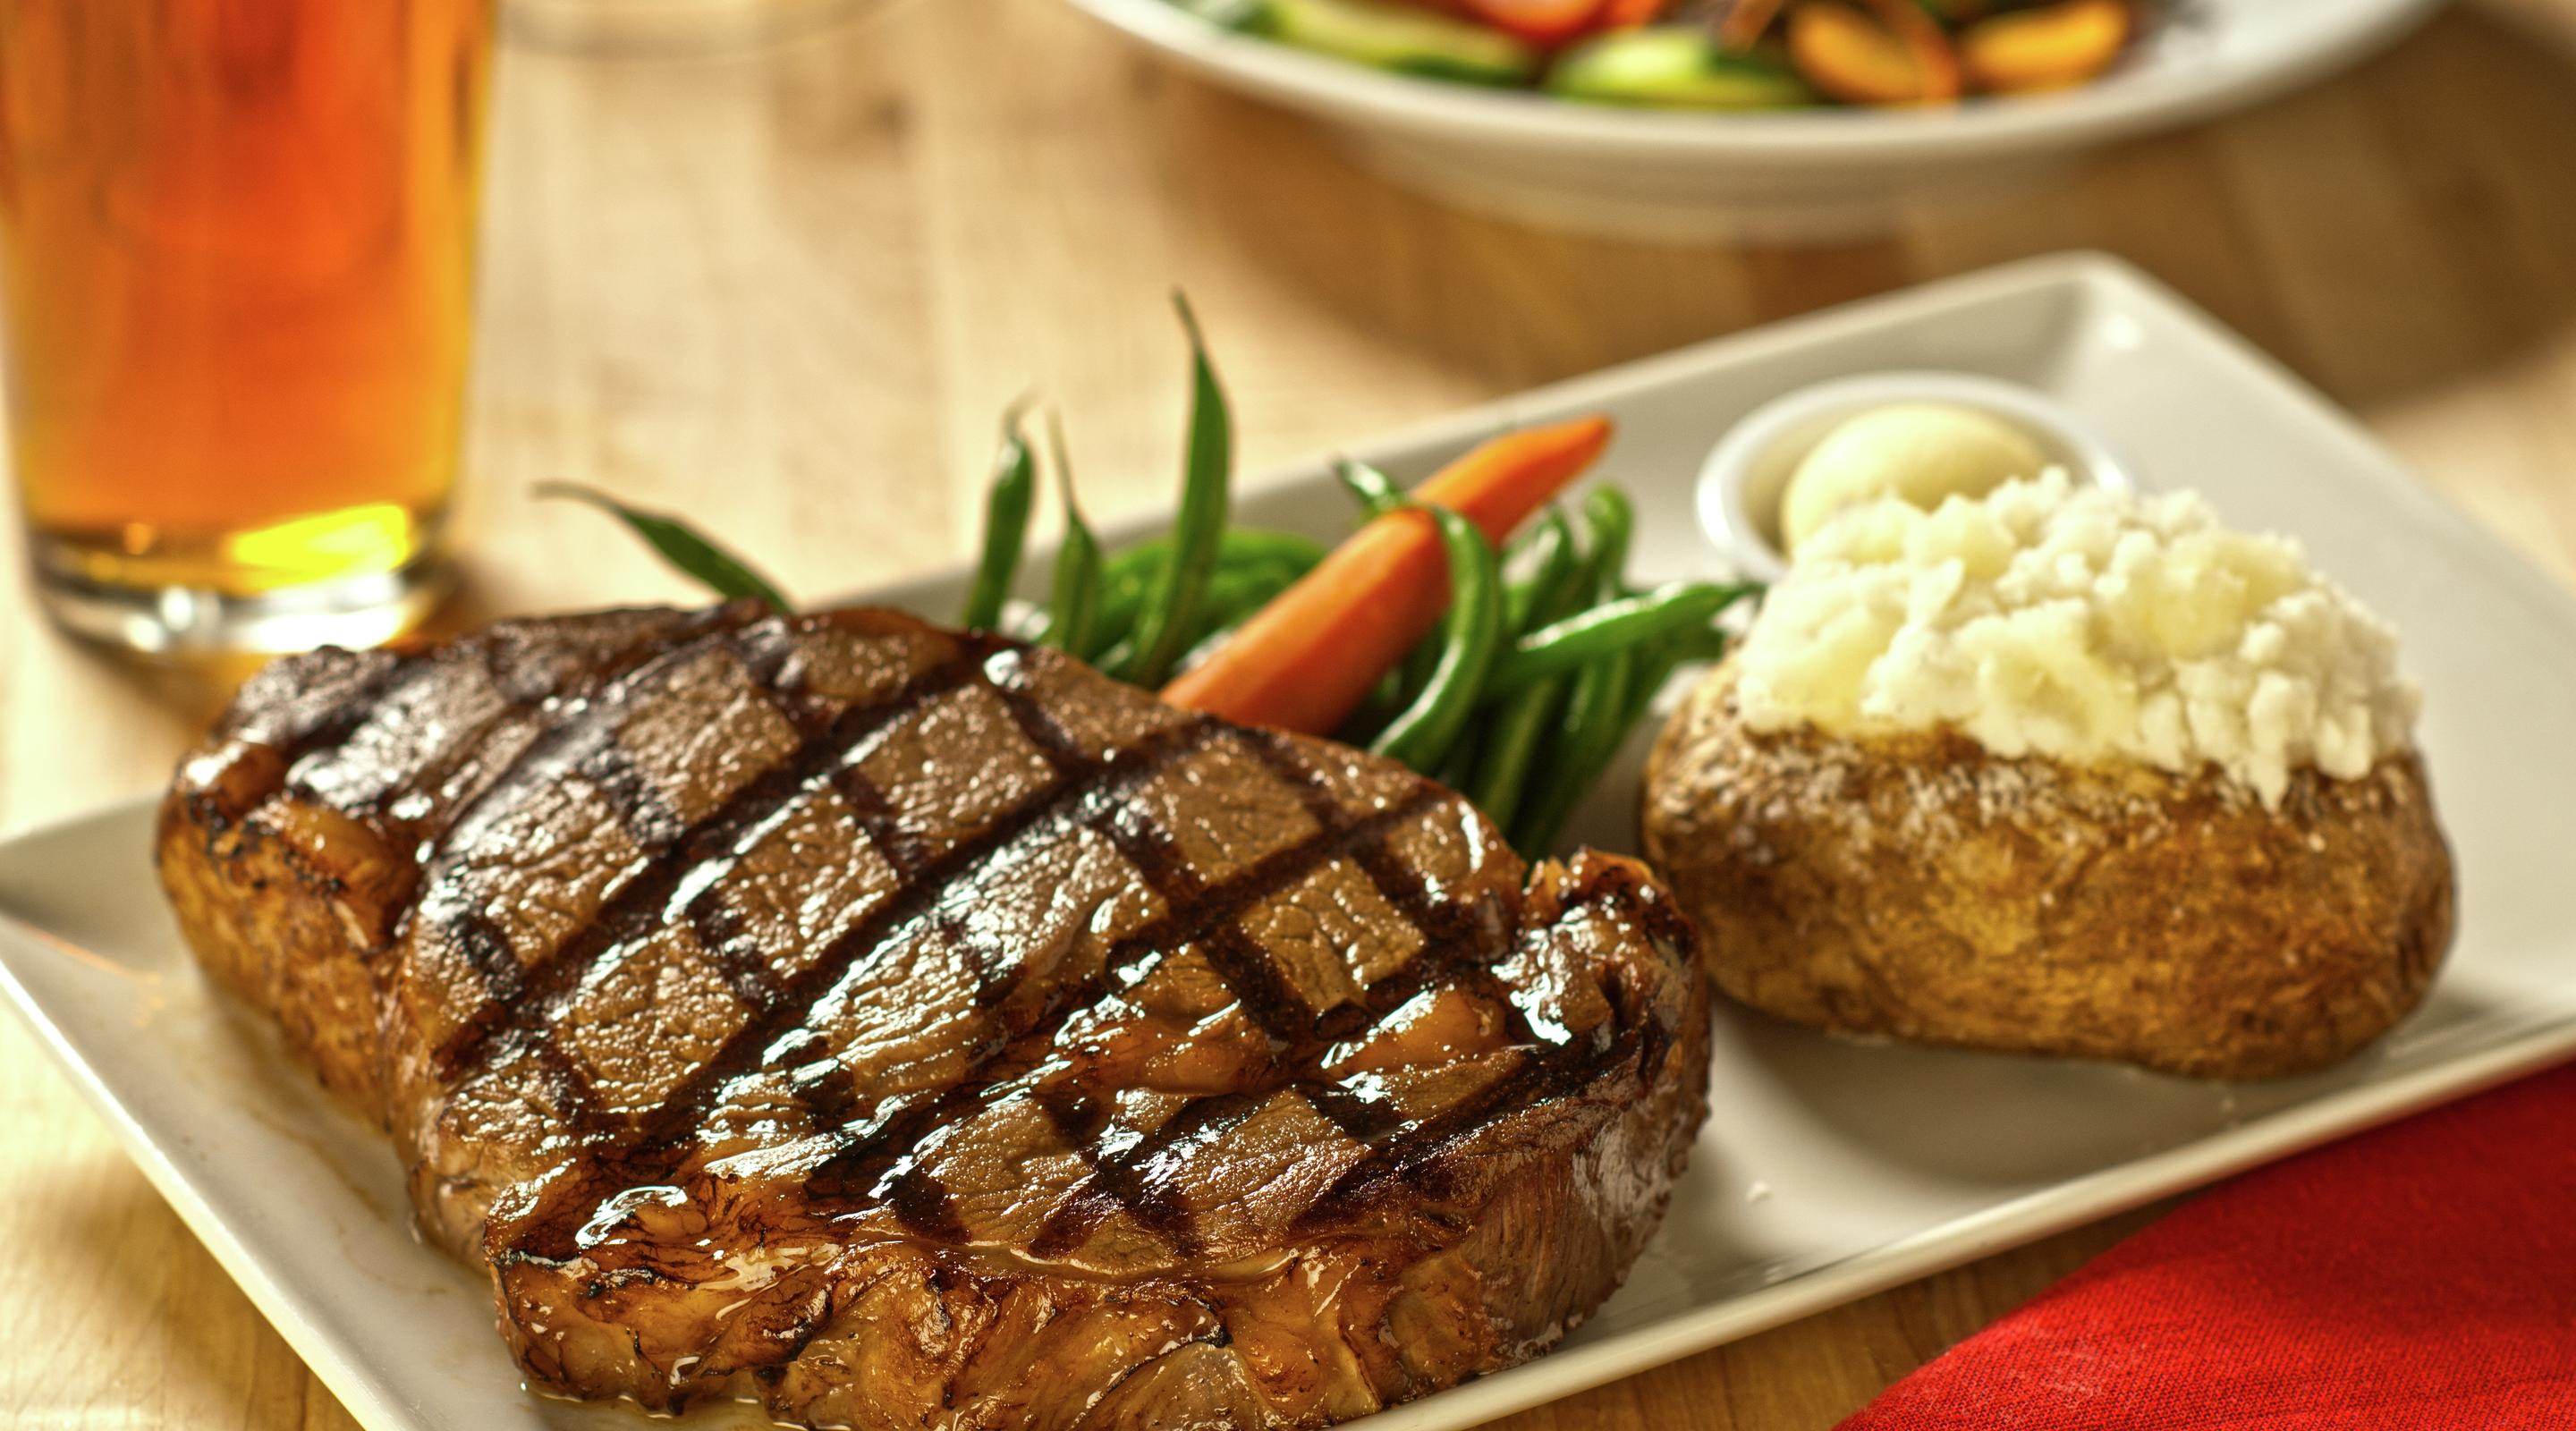 Ribeye steak paired with a baked potato and vegetables.